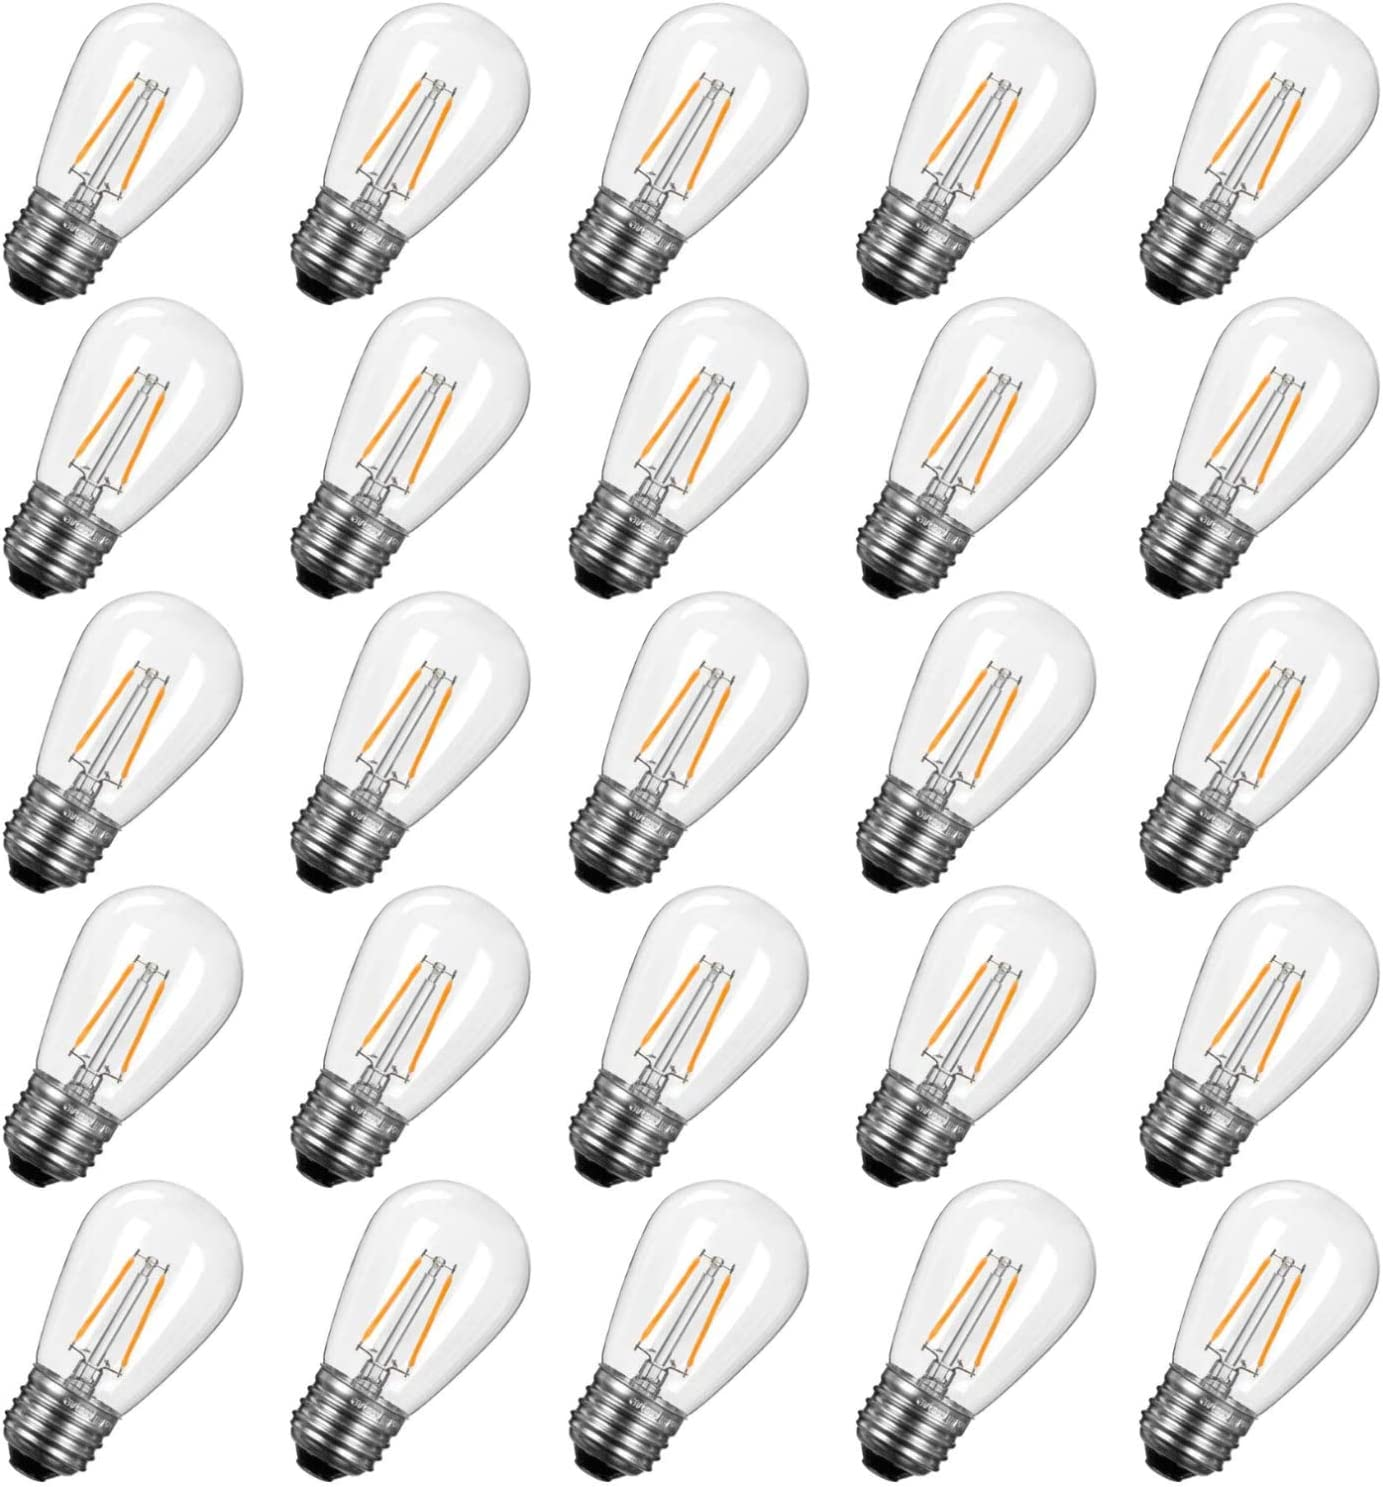 Shatterproof LED S14 Replacement Light Bulbs-E26 E27 Medium Screw Base Edison Bulbs Equivalent to 11 W, Fits for Commercial Outdoor Patio Garden Vintage Lights, 25-Pack, Warm White